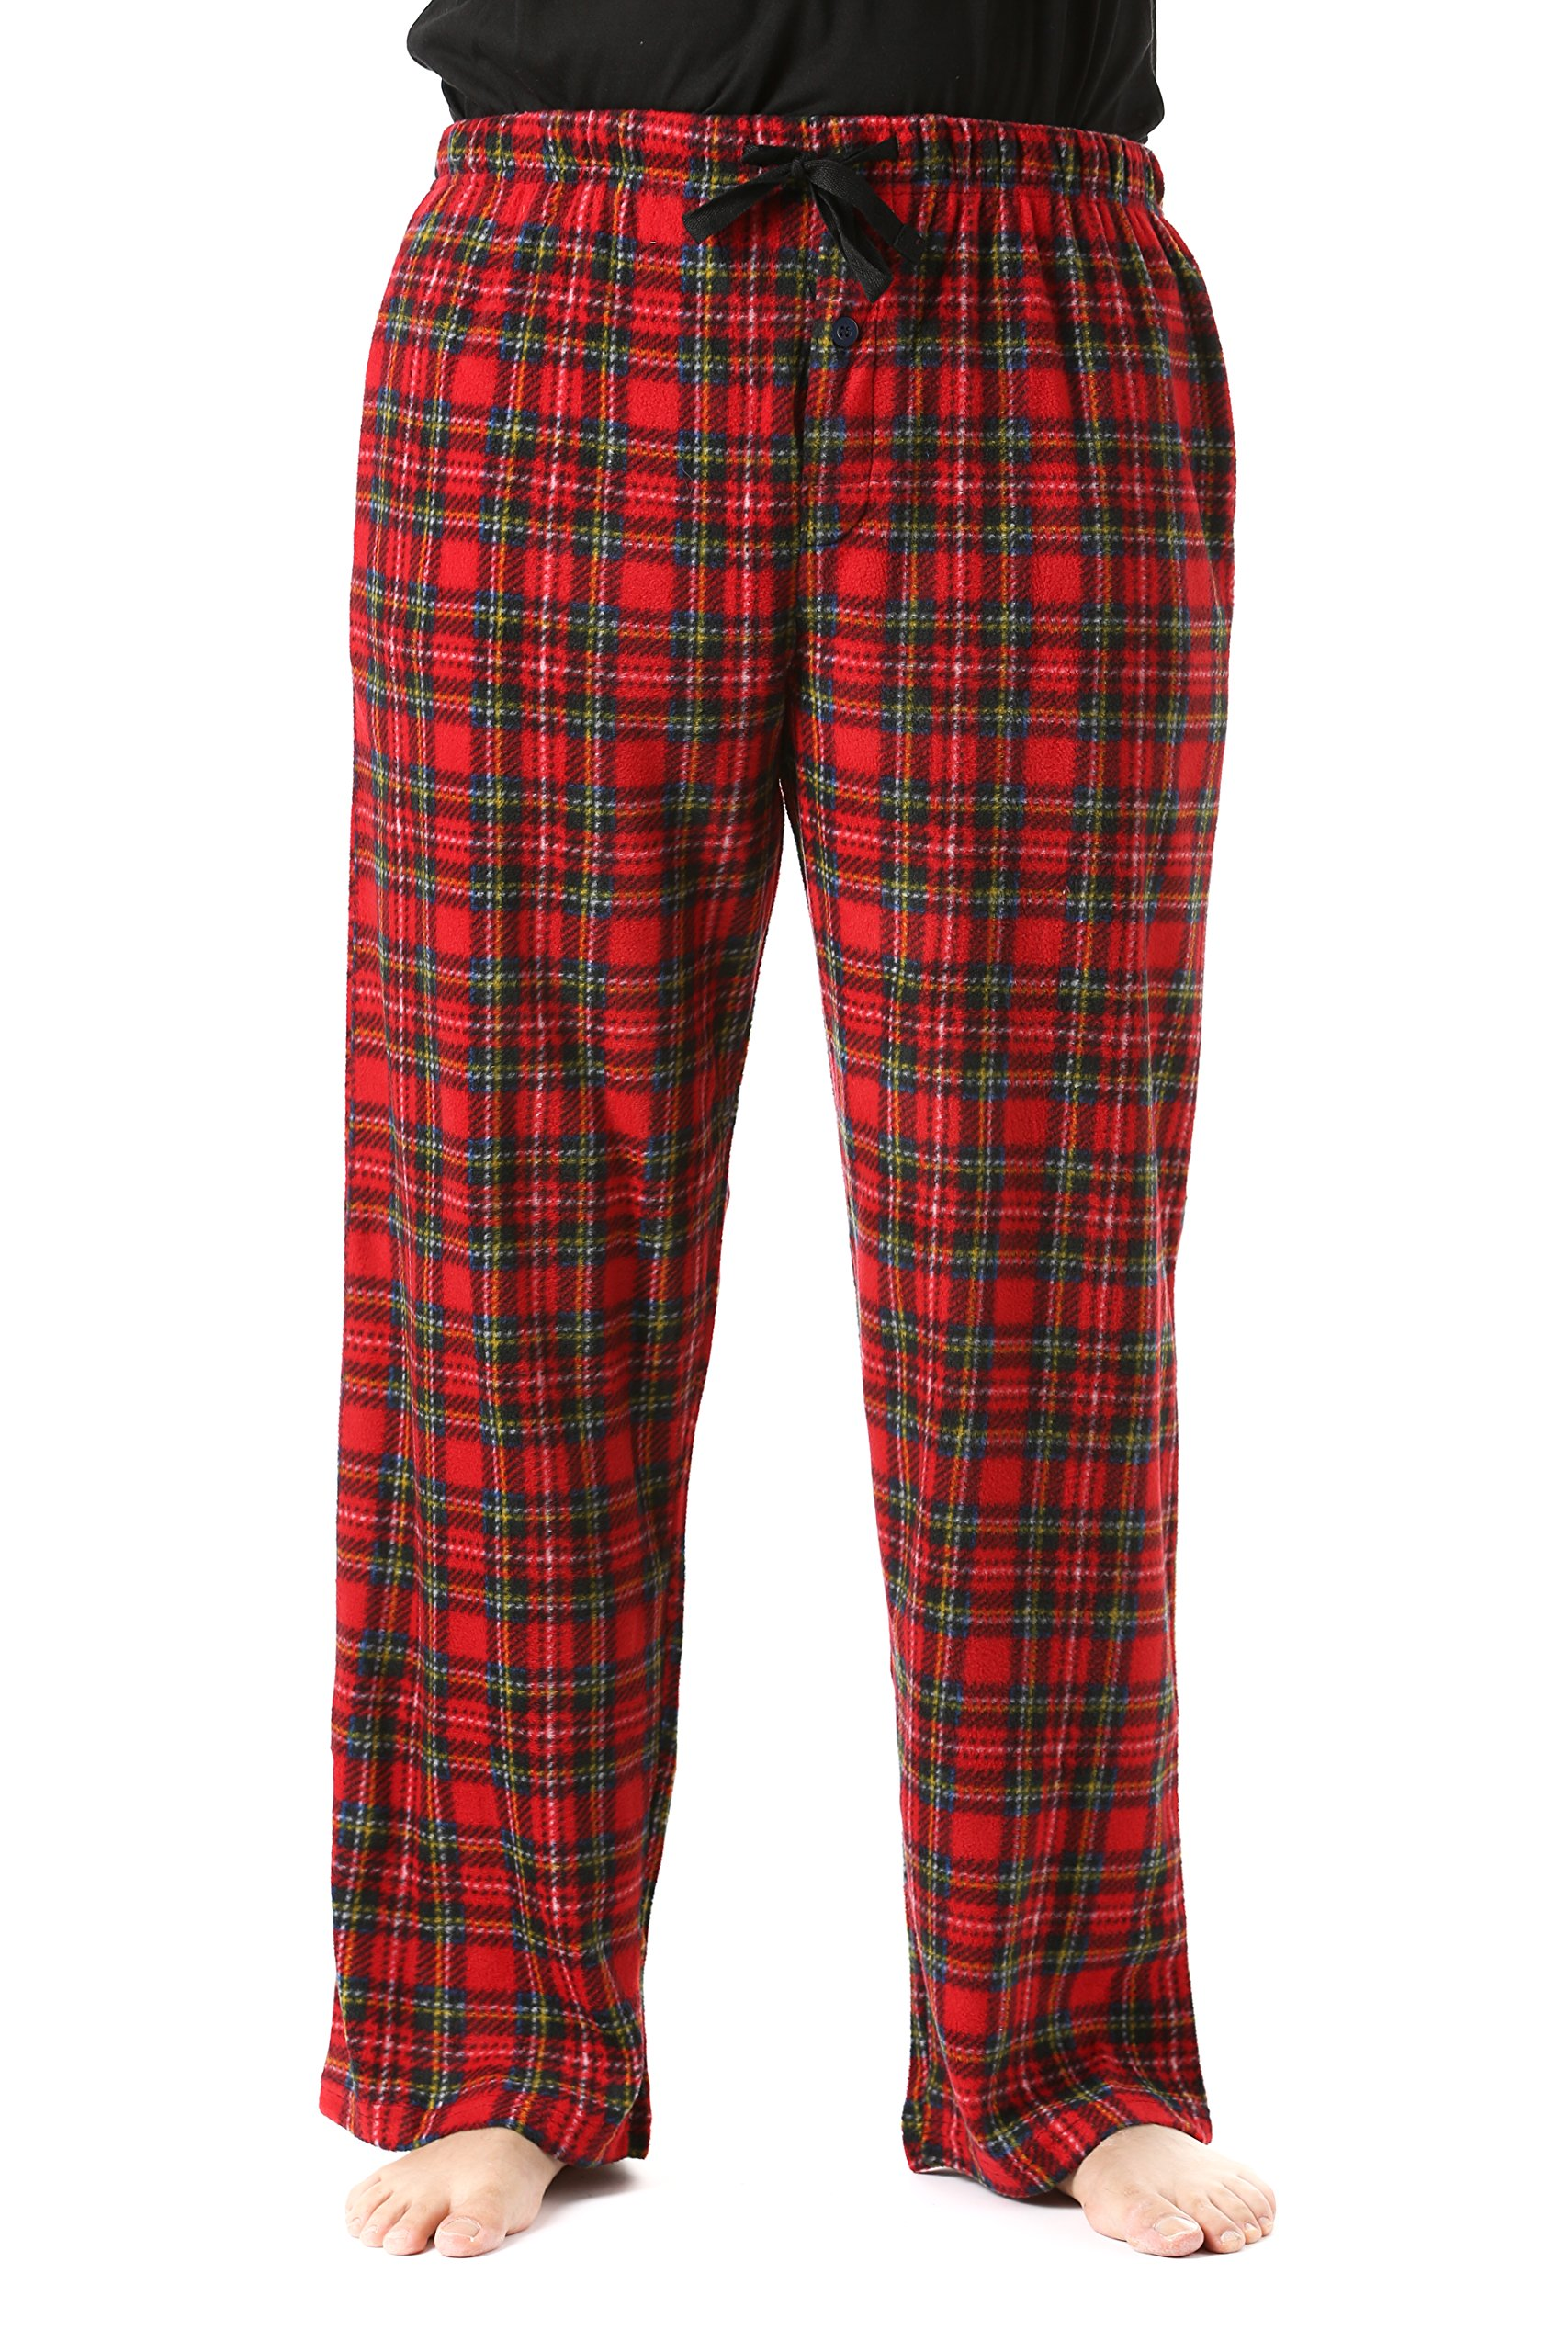 #followme 45902-10-M Polar Fleece Pajama Pants For Men Sleepwear PJS